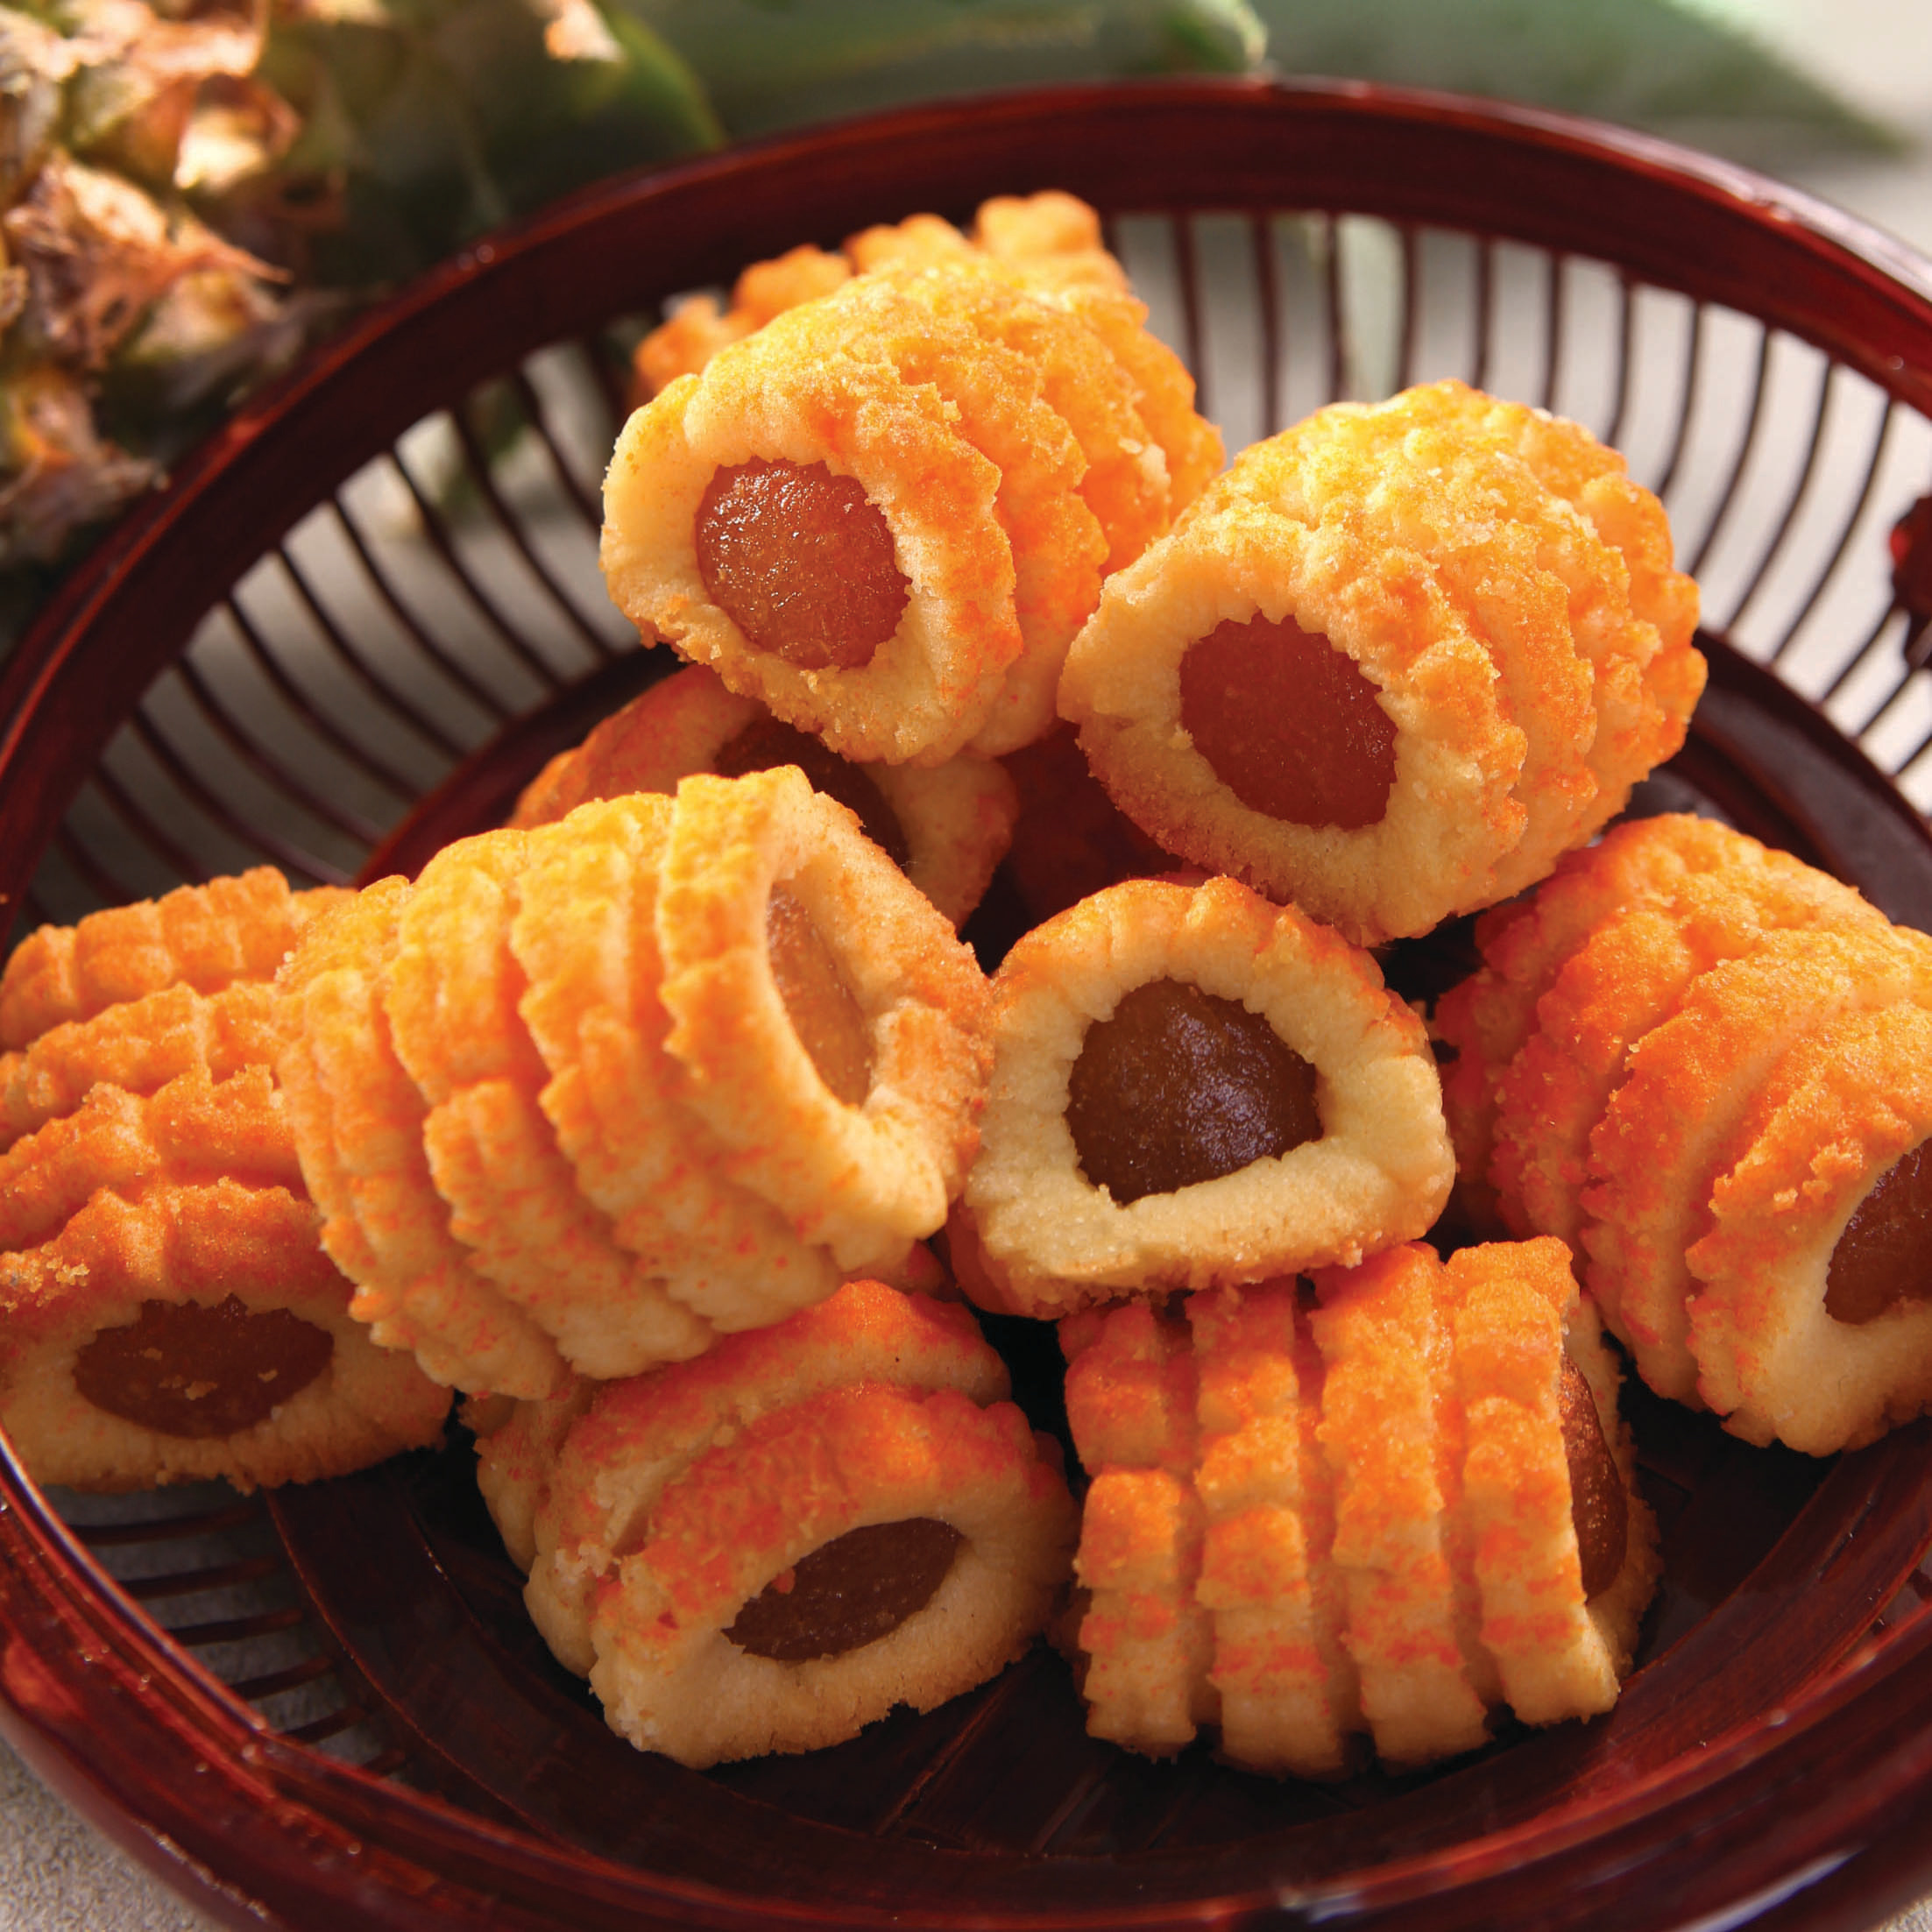 芝士凤梨酥Cheese Pineapple Cookies